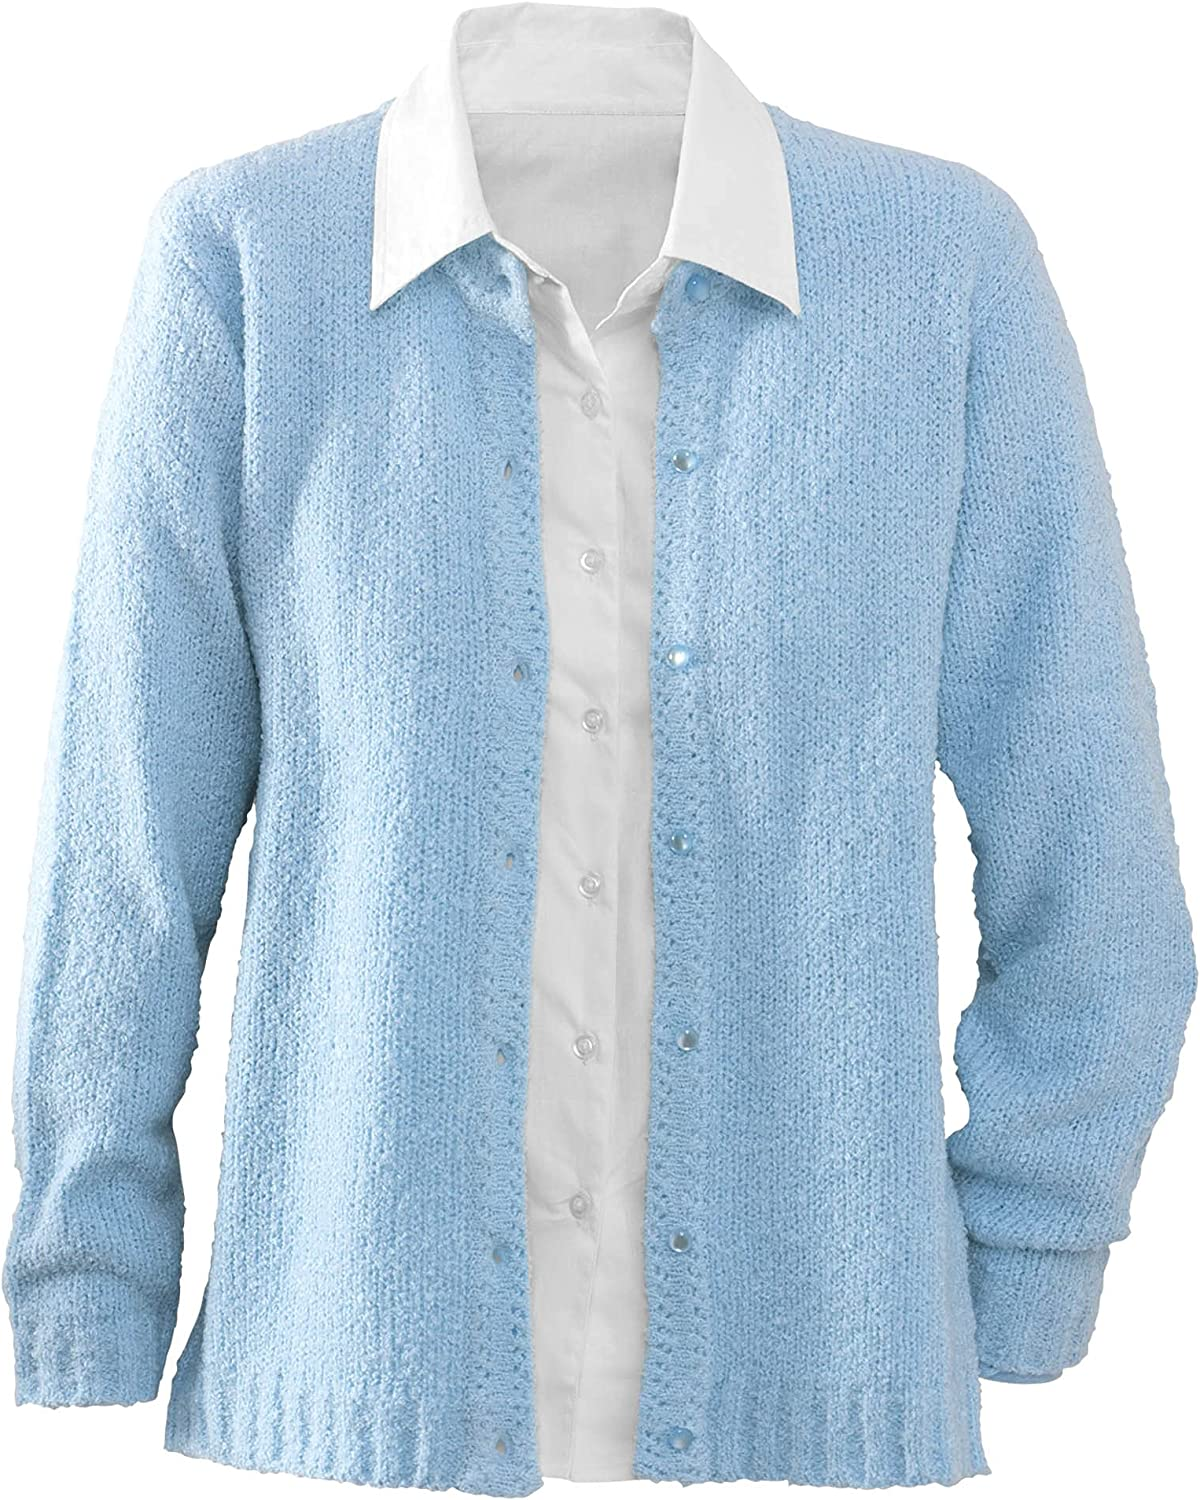 National Bouclé Cardigan Sweater Button-Front Rib-Knit, Cozy and Classic